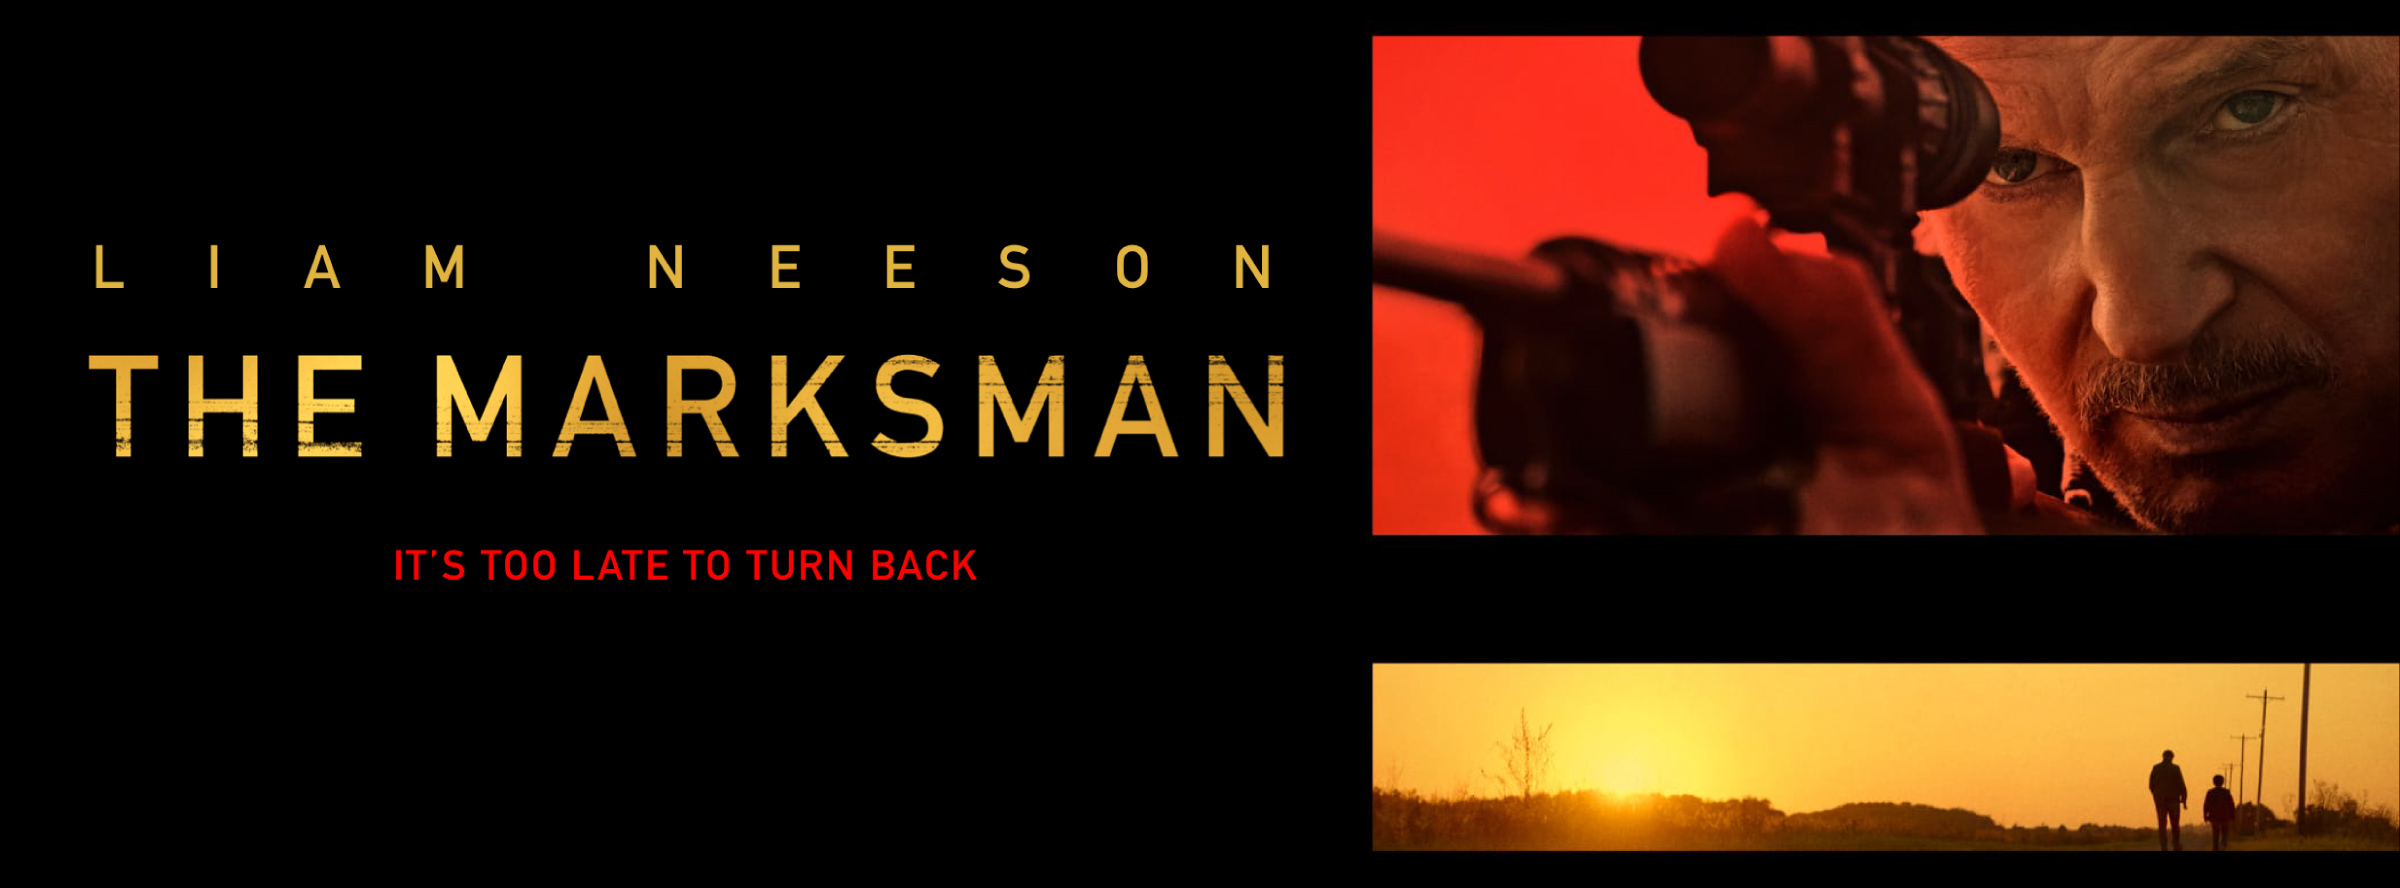 The-Marksman-Trailer-and-Info